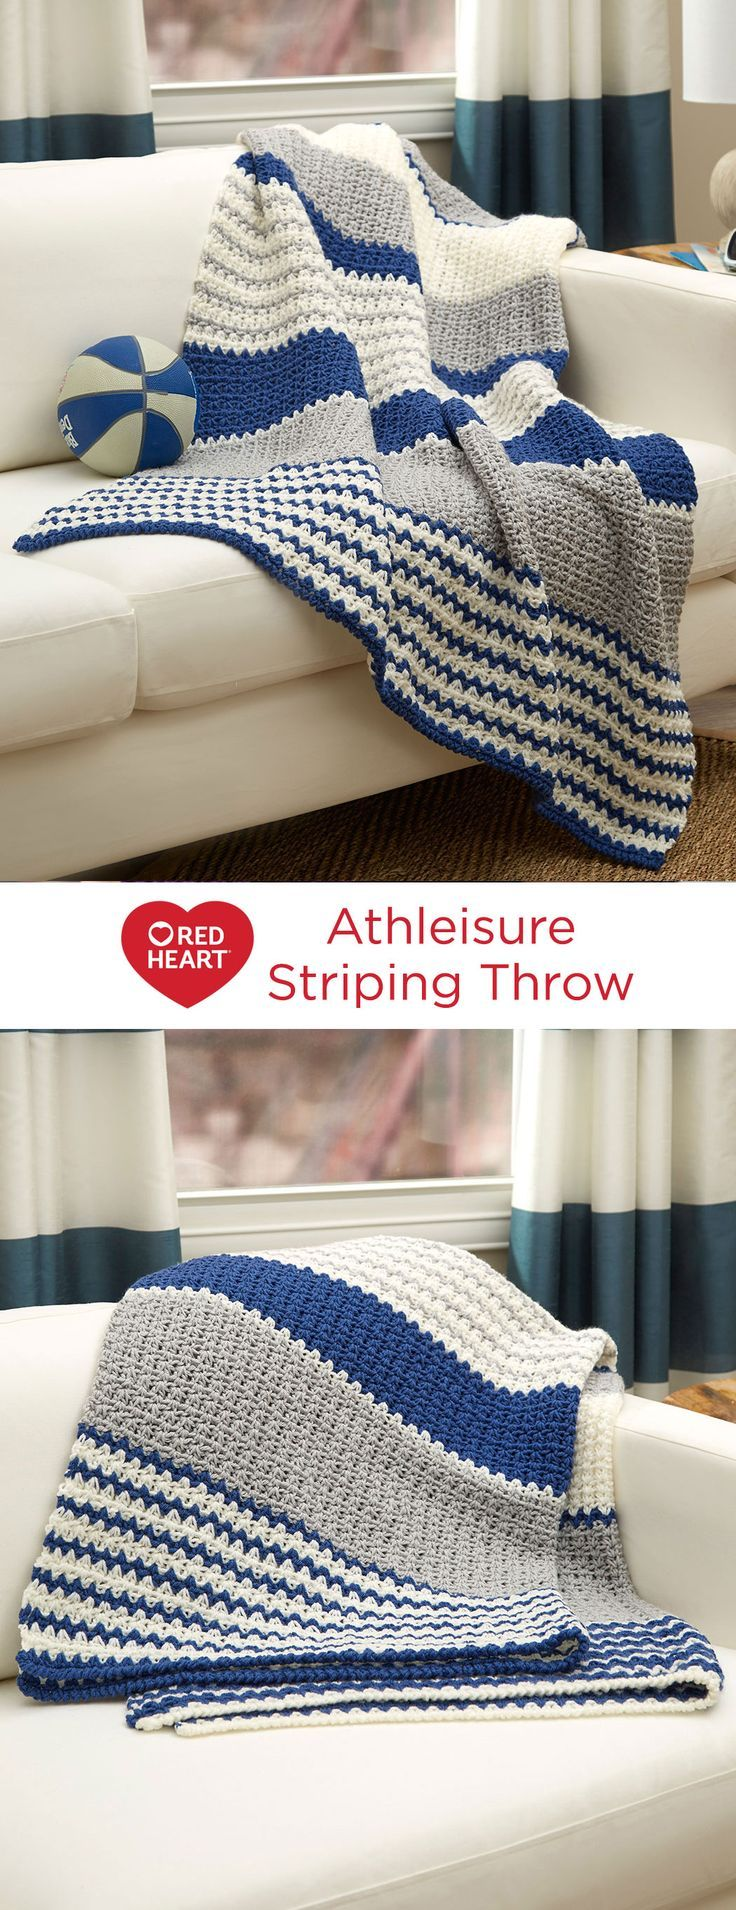 Athleisure Striping Throw Free Crochet Pattern in Red Heart Yarns ...